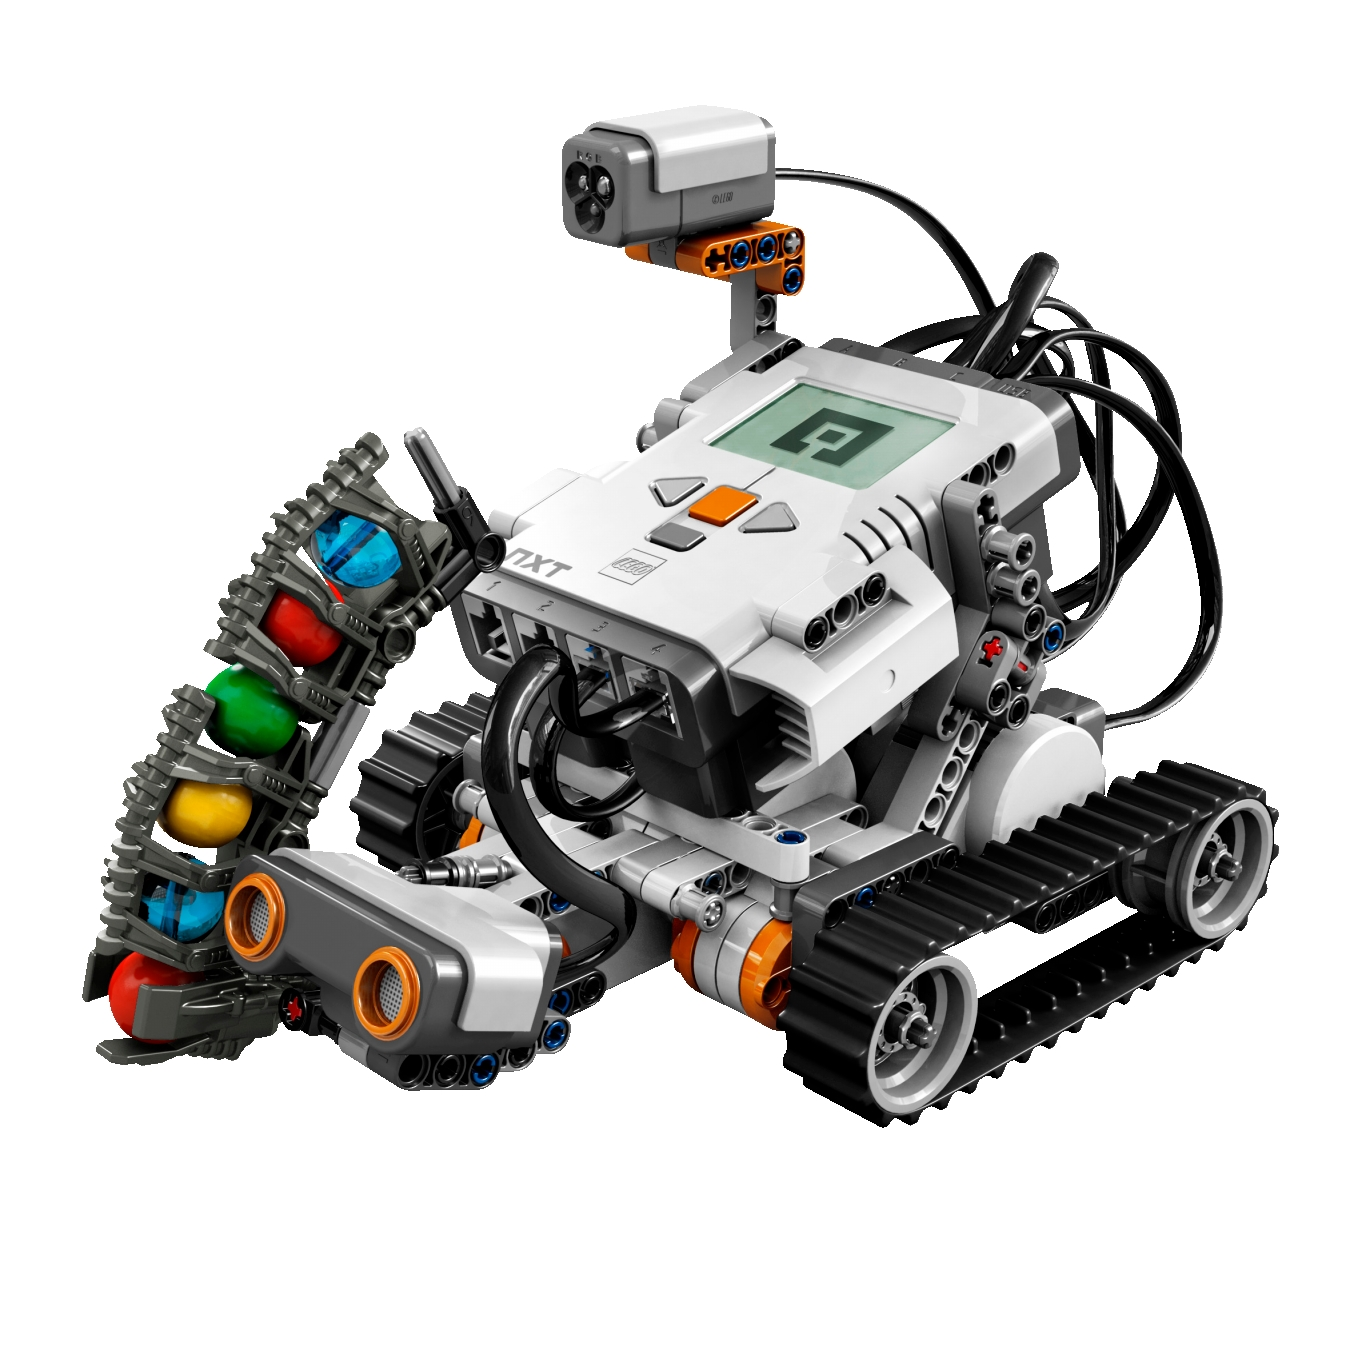 Summer of Tech Interns: Lego Mindstorm robot